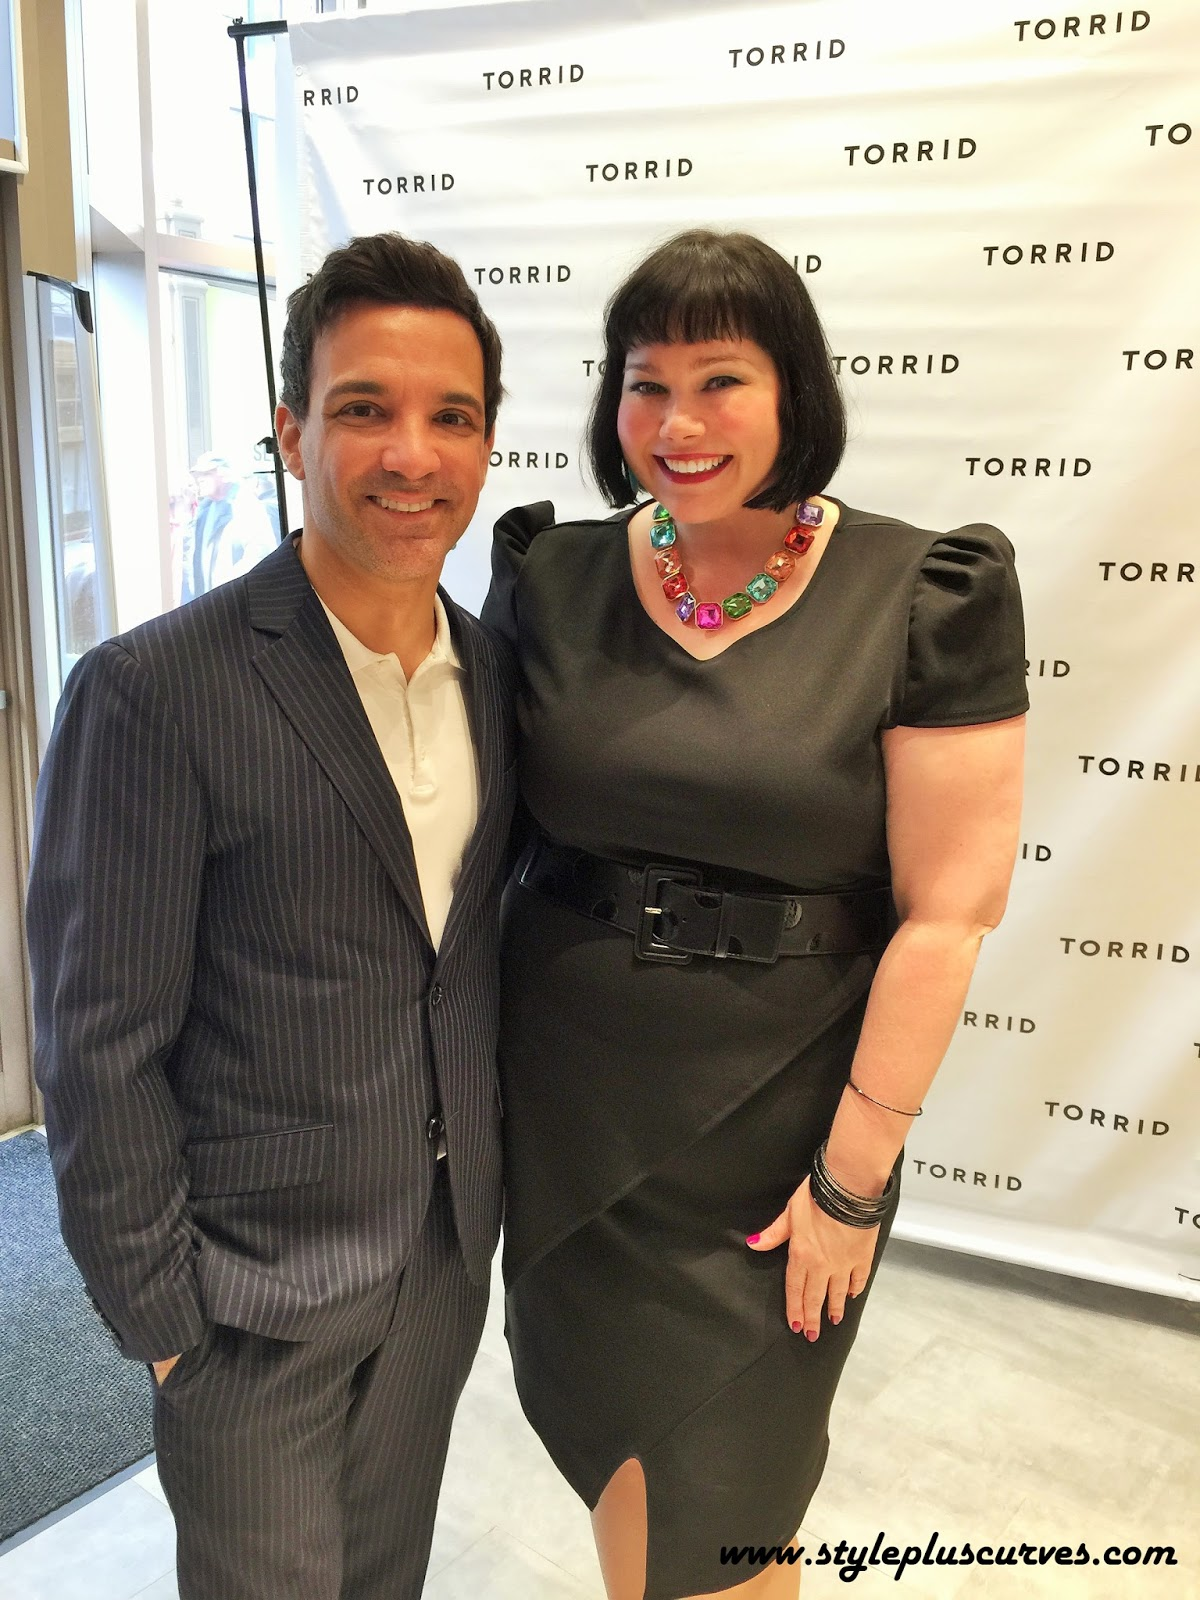 Amber from Style Plus Curves with George Kotsiopoulos at the Torrid on State Opening